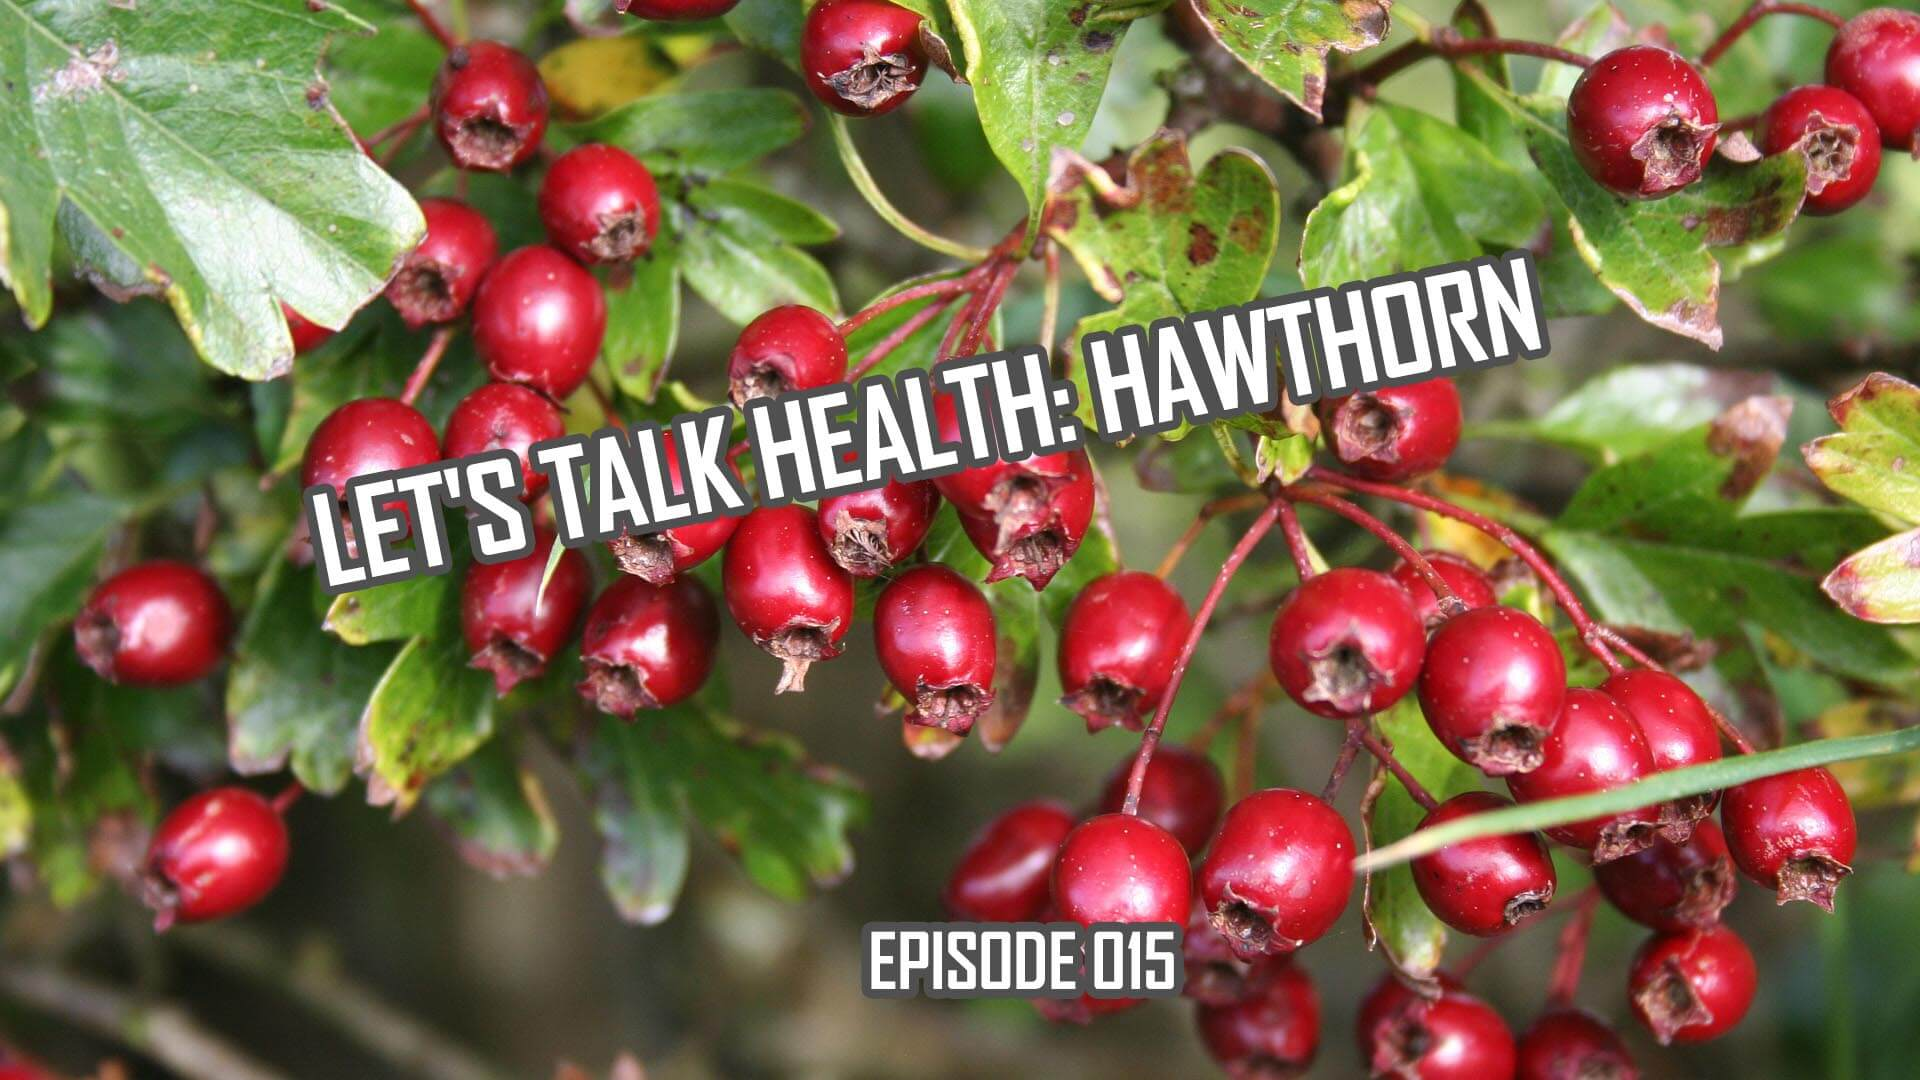 Let's Talk Health: Hawthorn History and Health Effects (014)